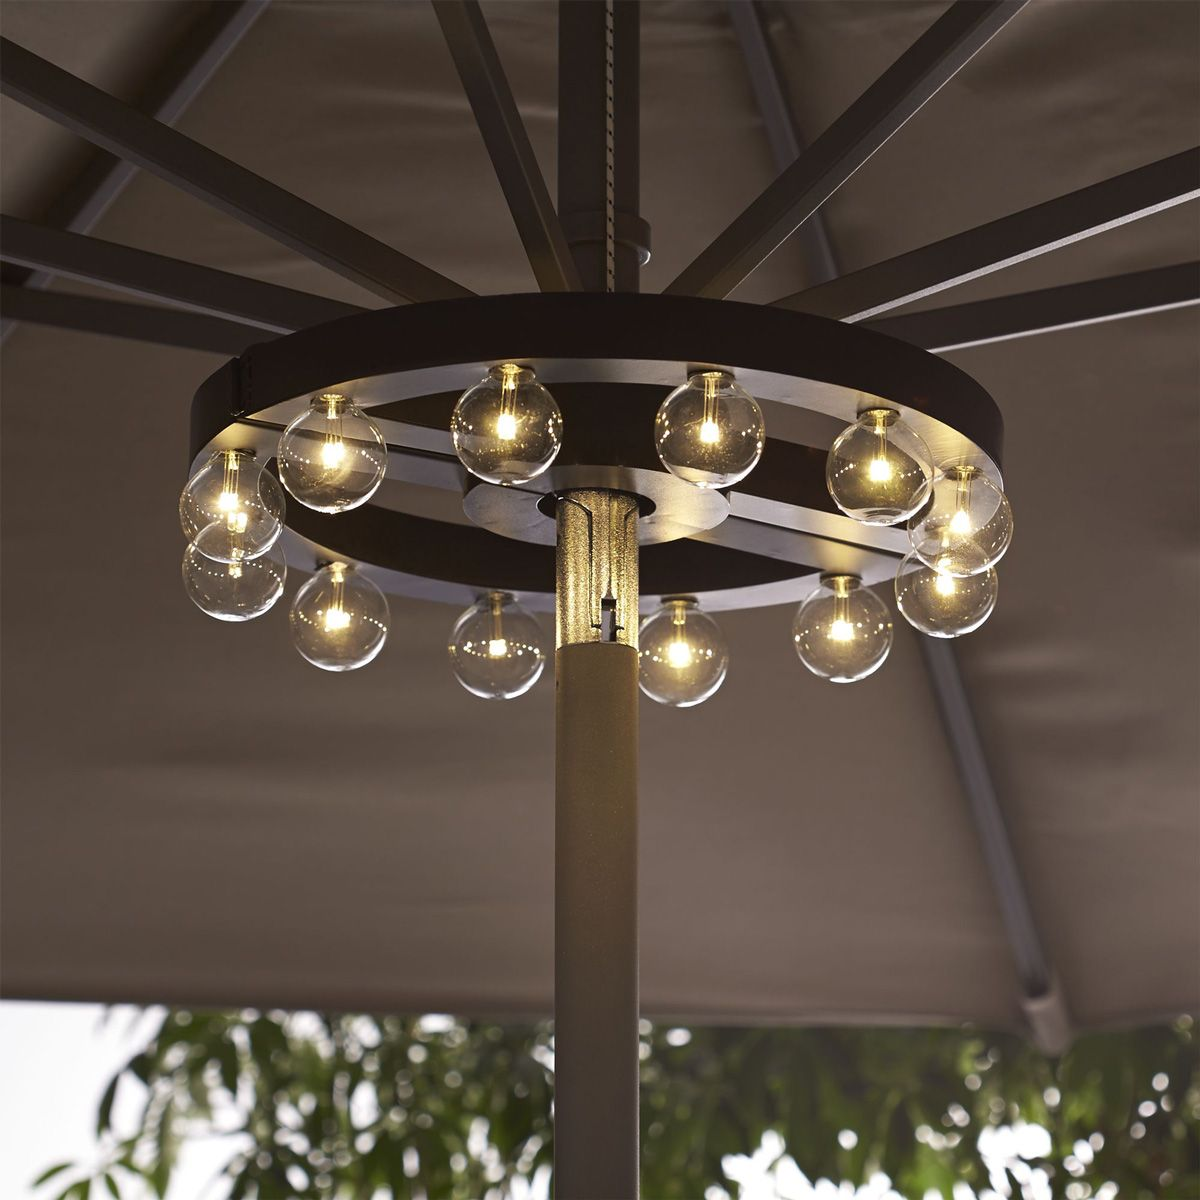 patio umbrella marquee lights patio umbrellas marquee lights